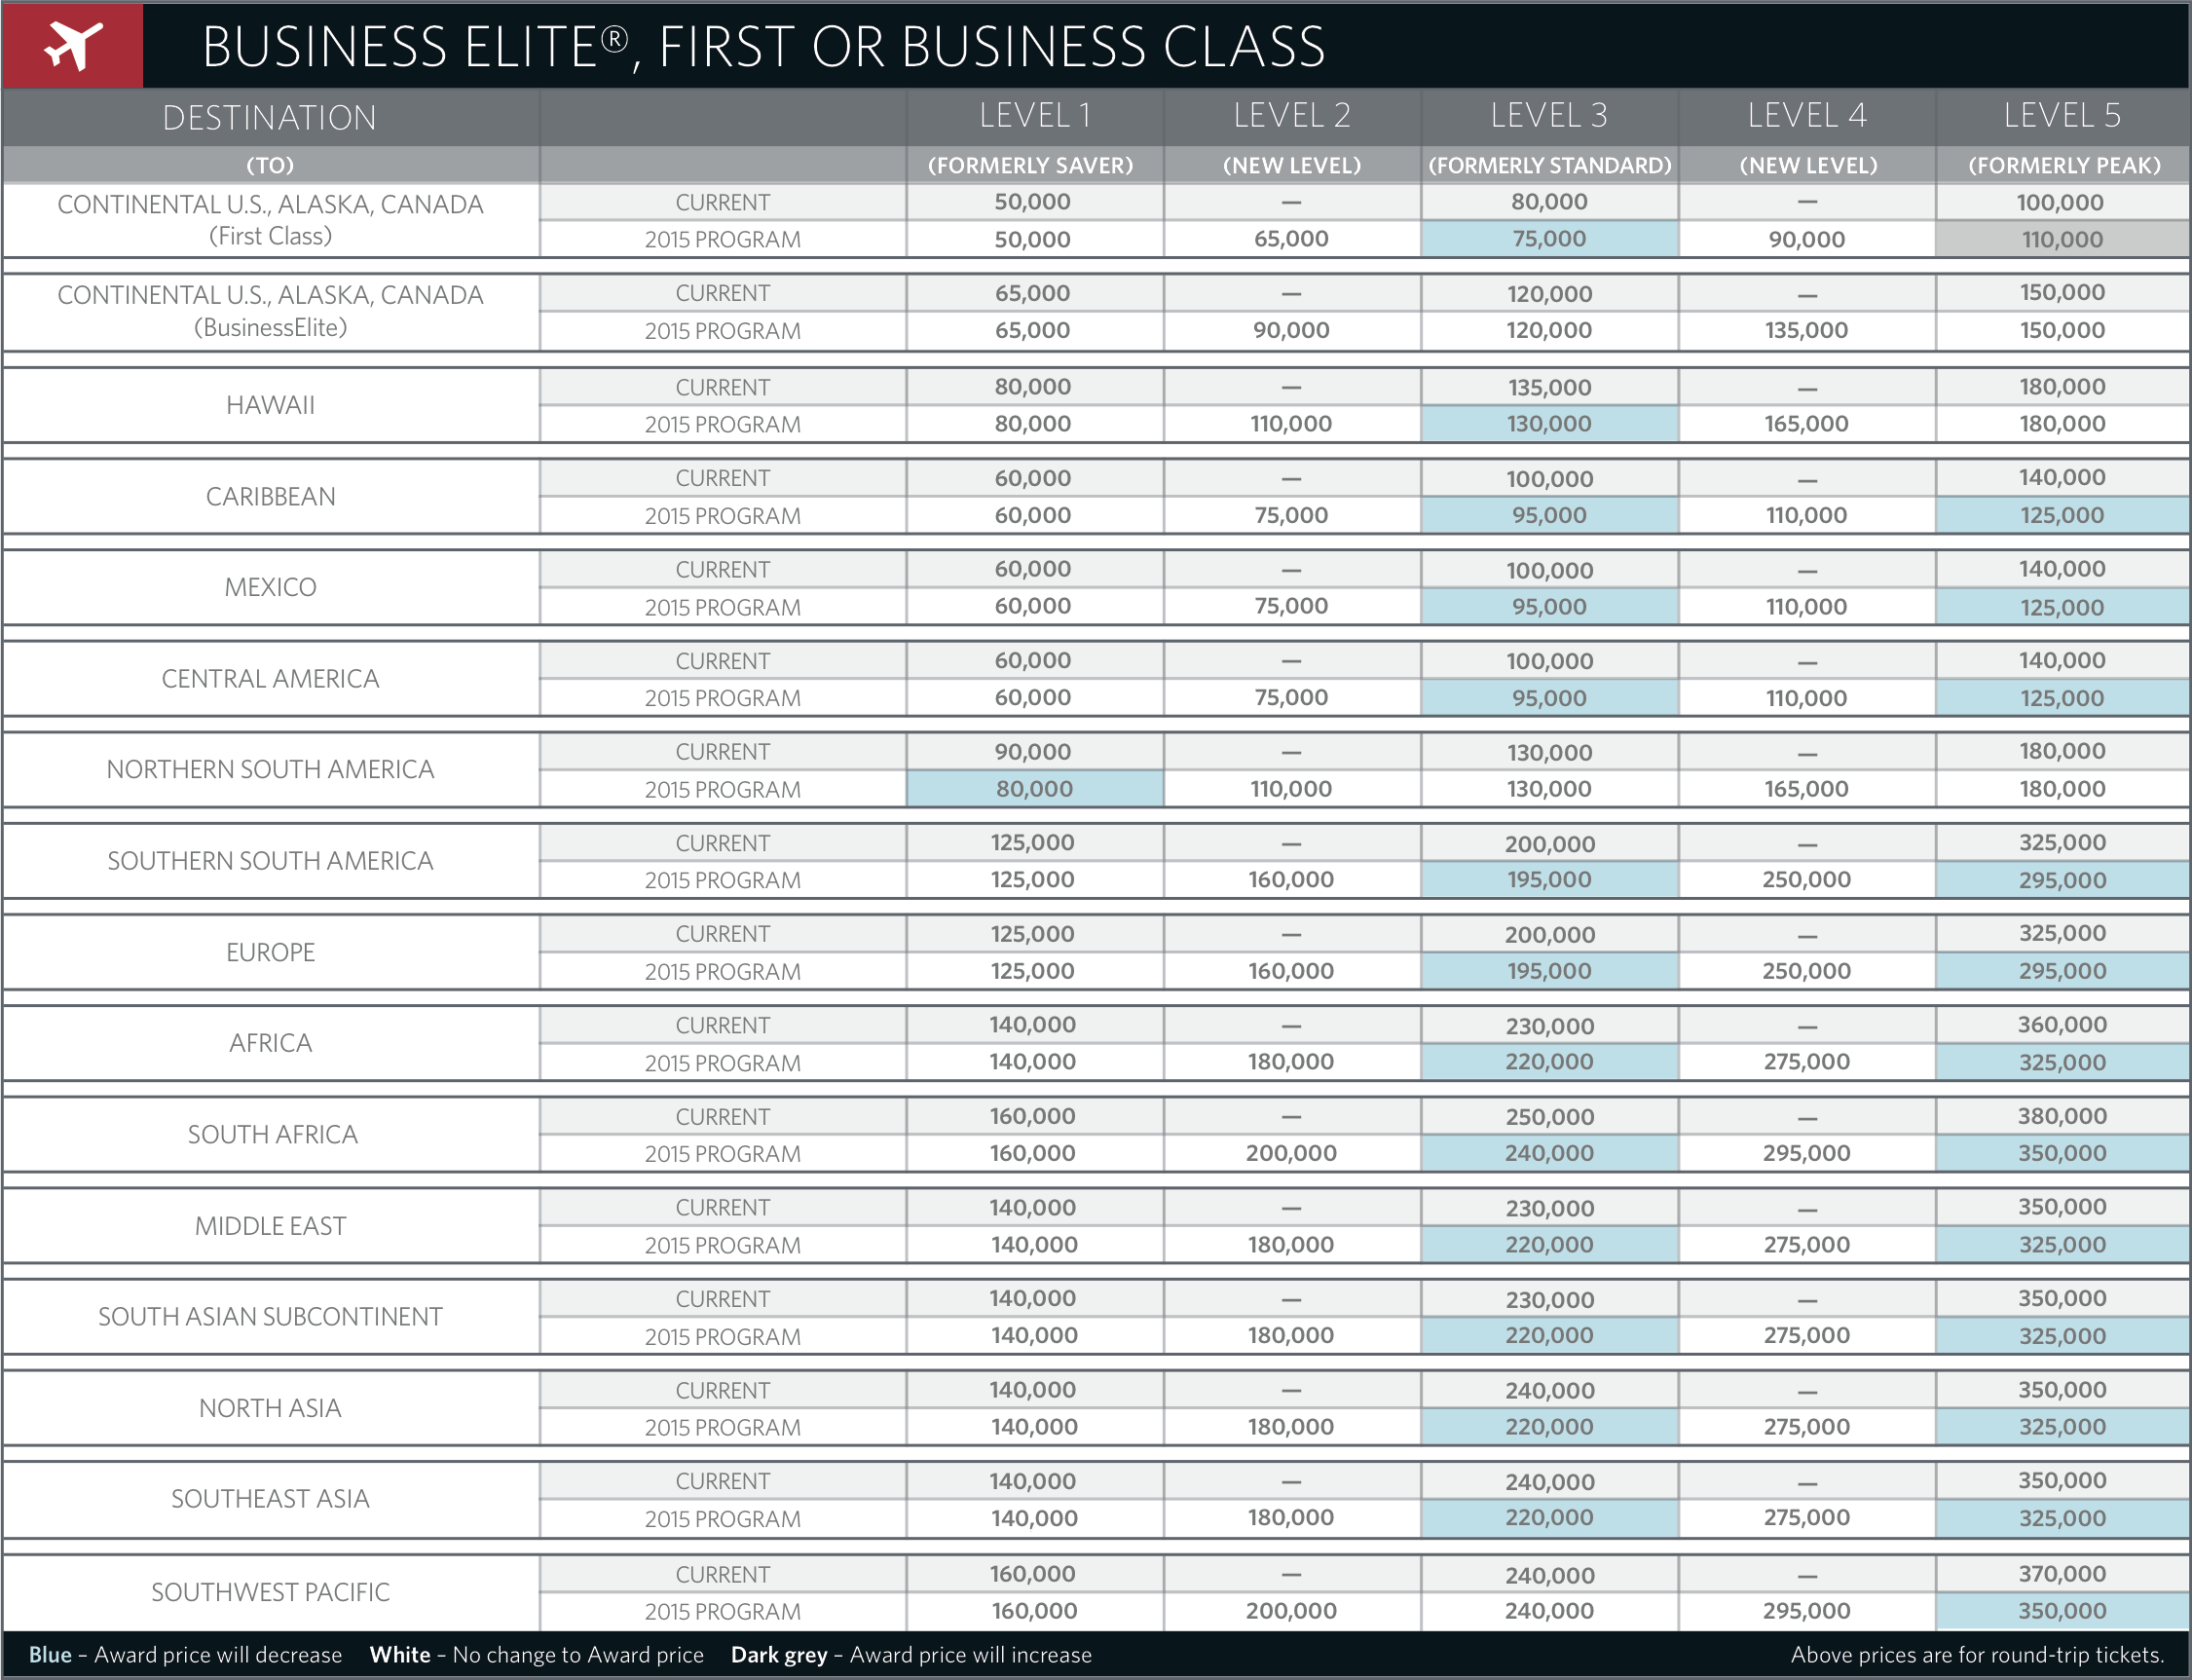 Click on the premium class SkyMiles award chart for an enlarged view. Source: Delta Air Lines.